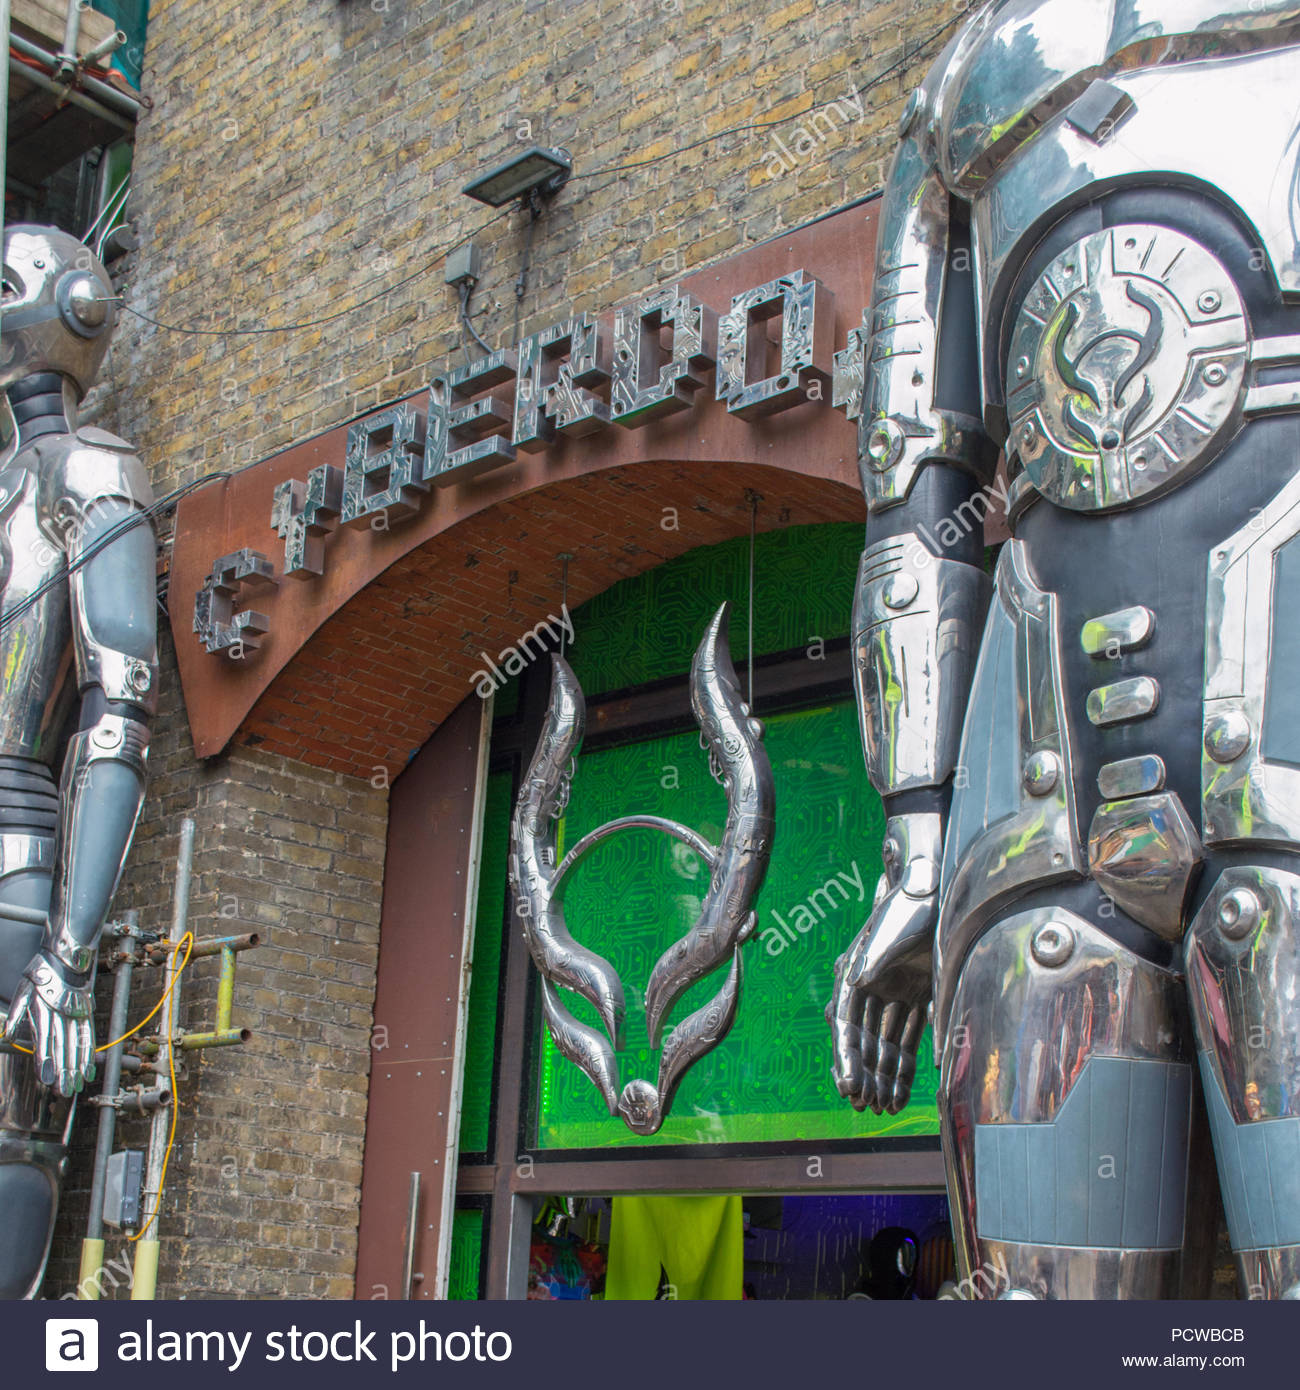 Logo and robot statues of Cyberdog on Camden Market in Londen United Kingdom - Stock Image